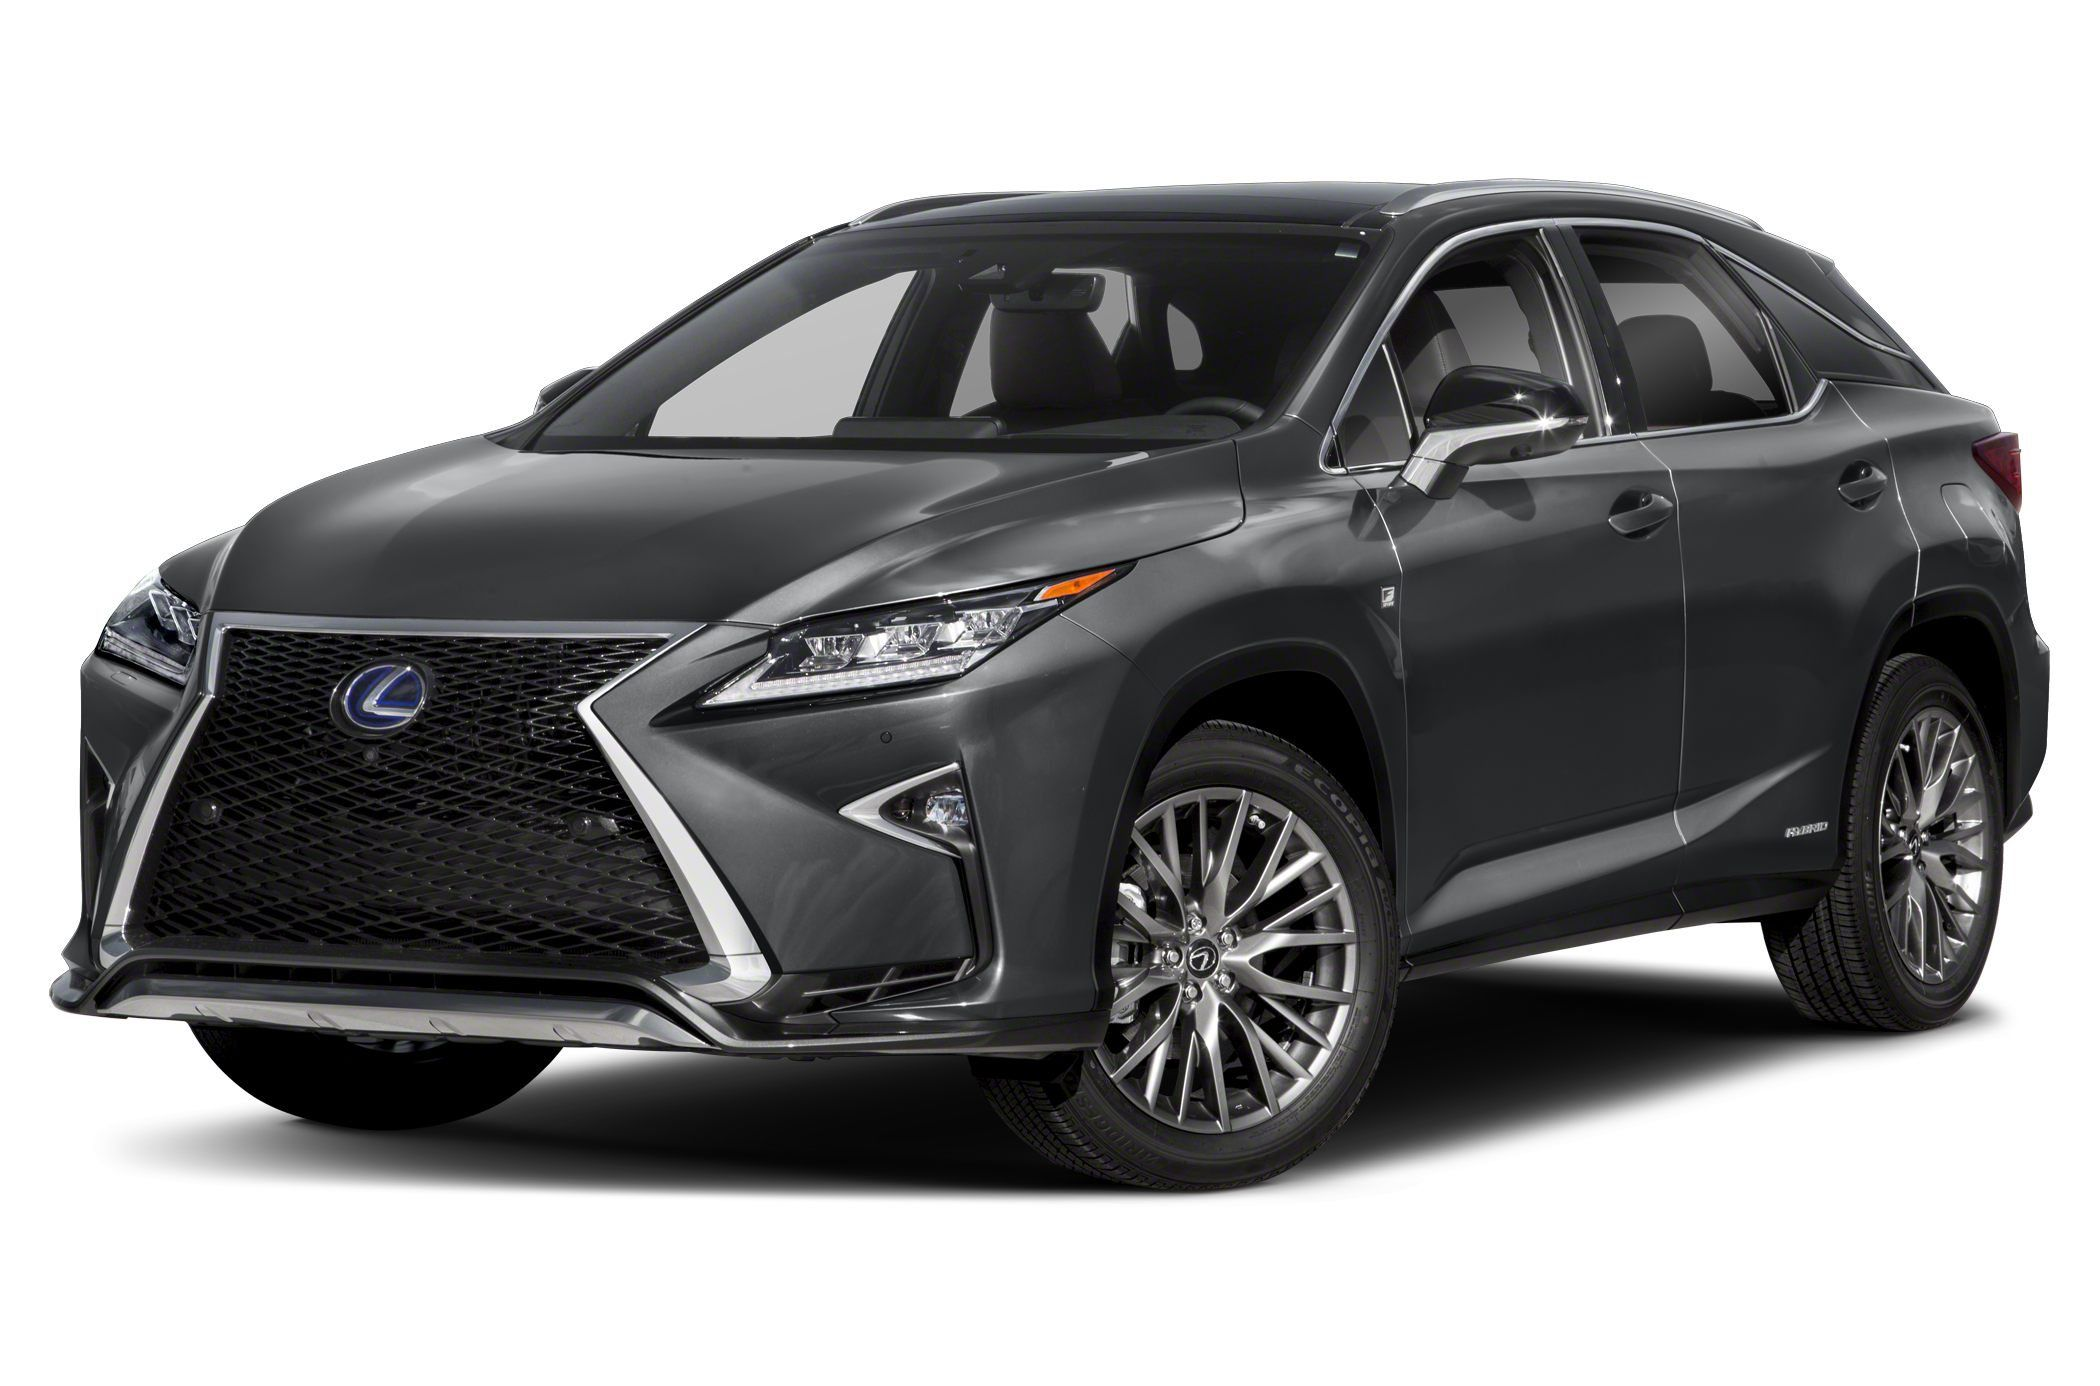 2021 Lexus Tx 350 Price, Design and Review in 2020 Lexus